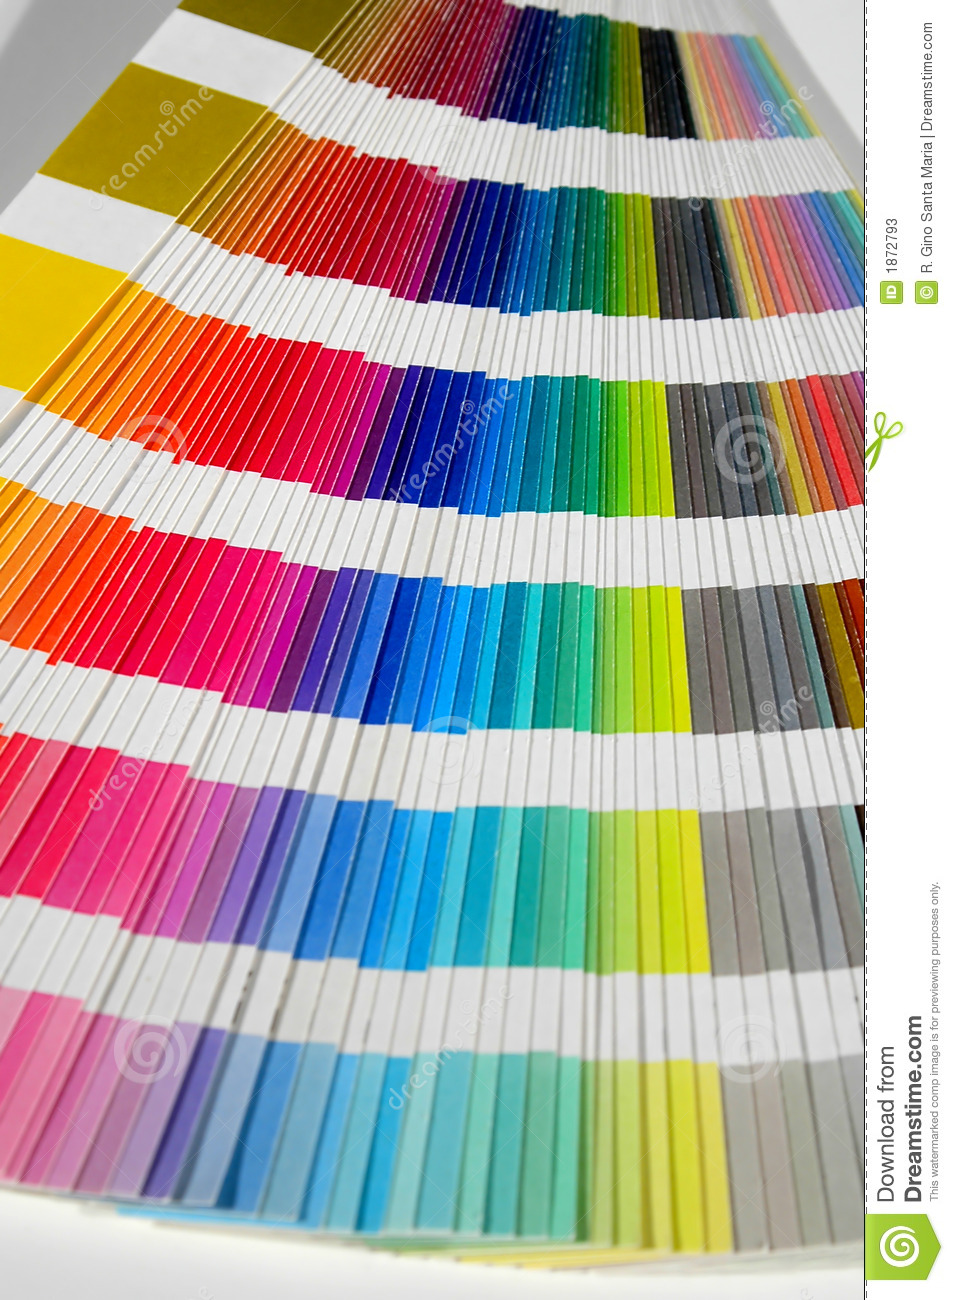 Color Swatch Book stock image. Image of designer, office - 1872793